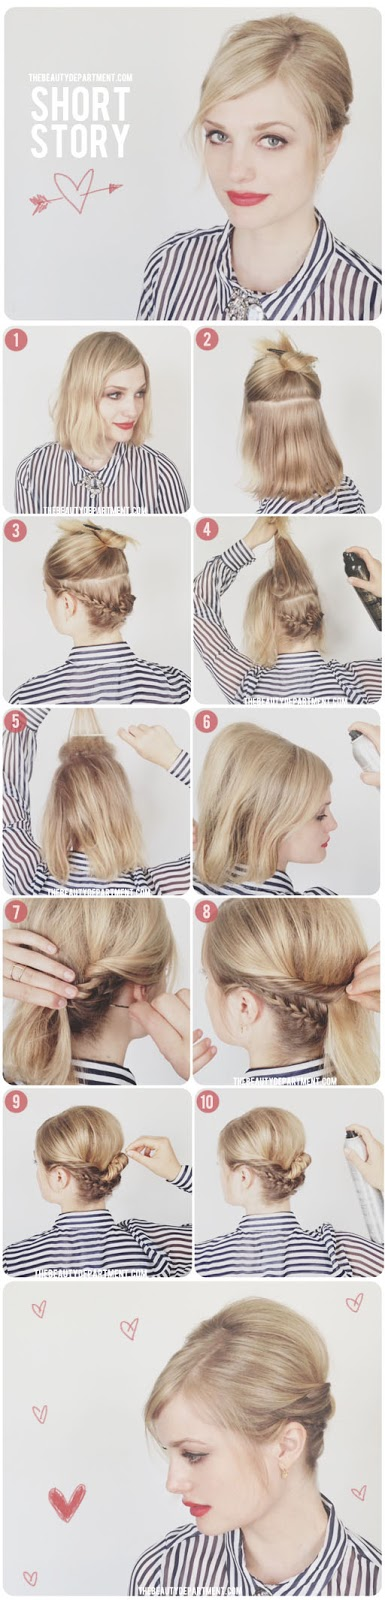 5.FRENCH BRAID UPDO